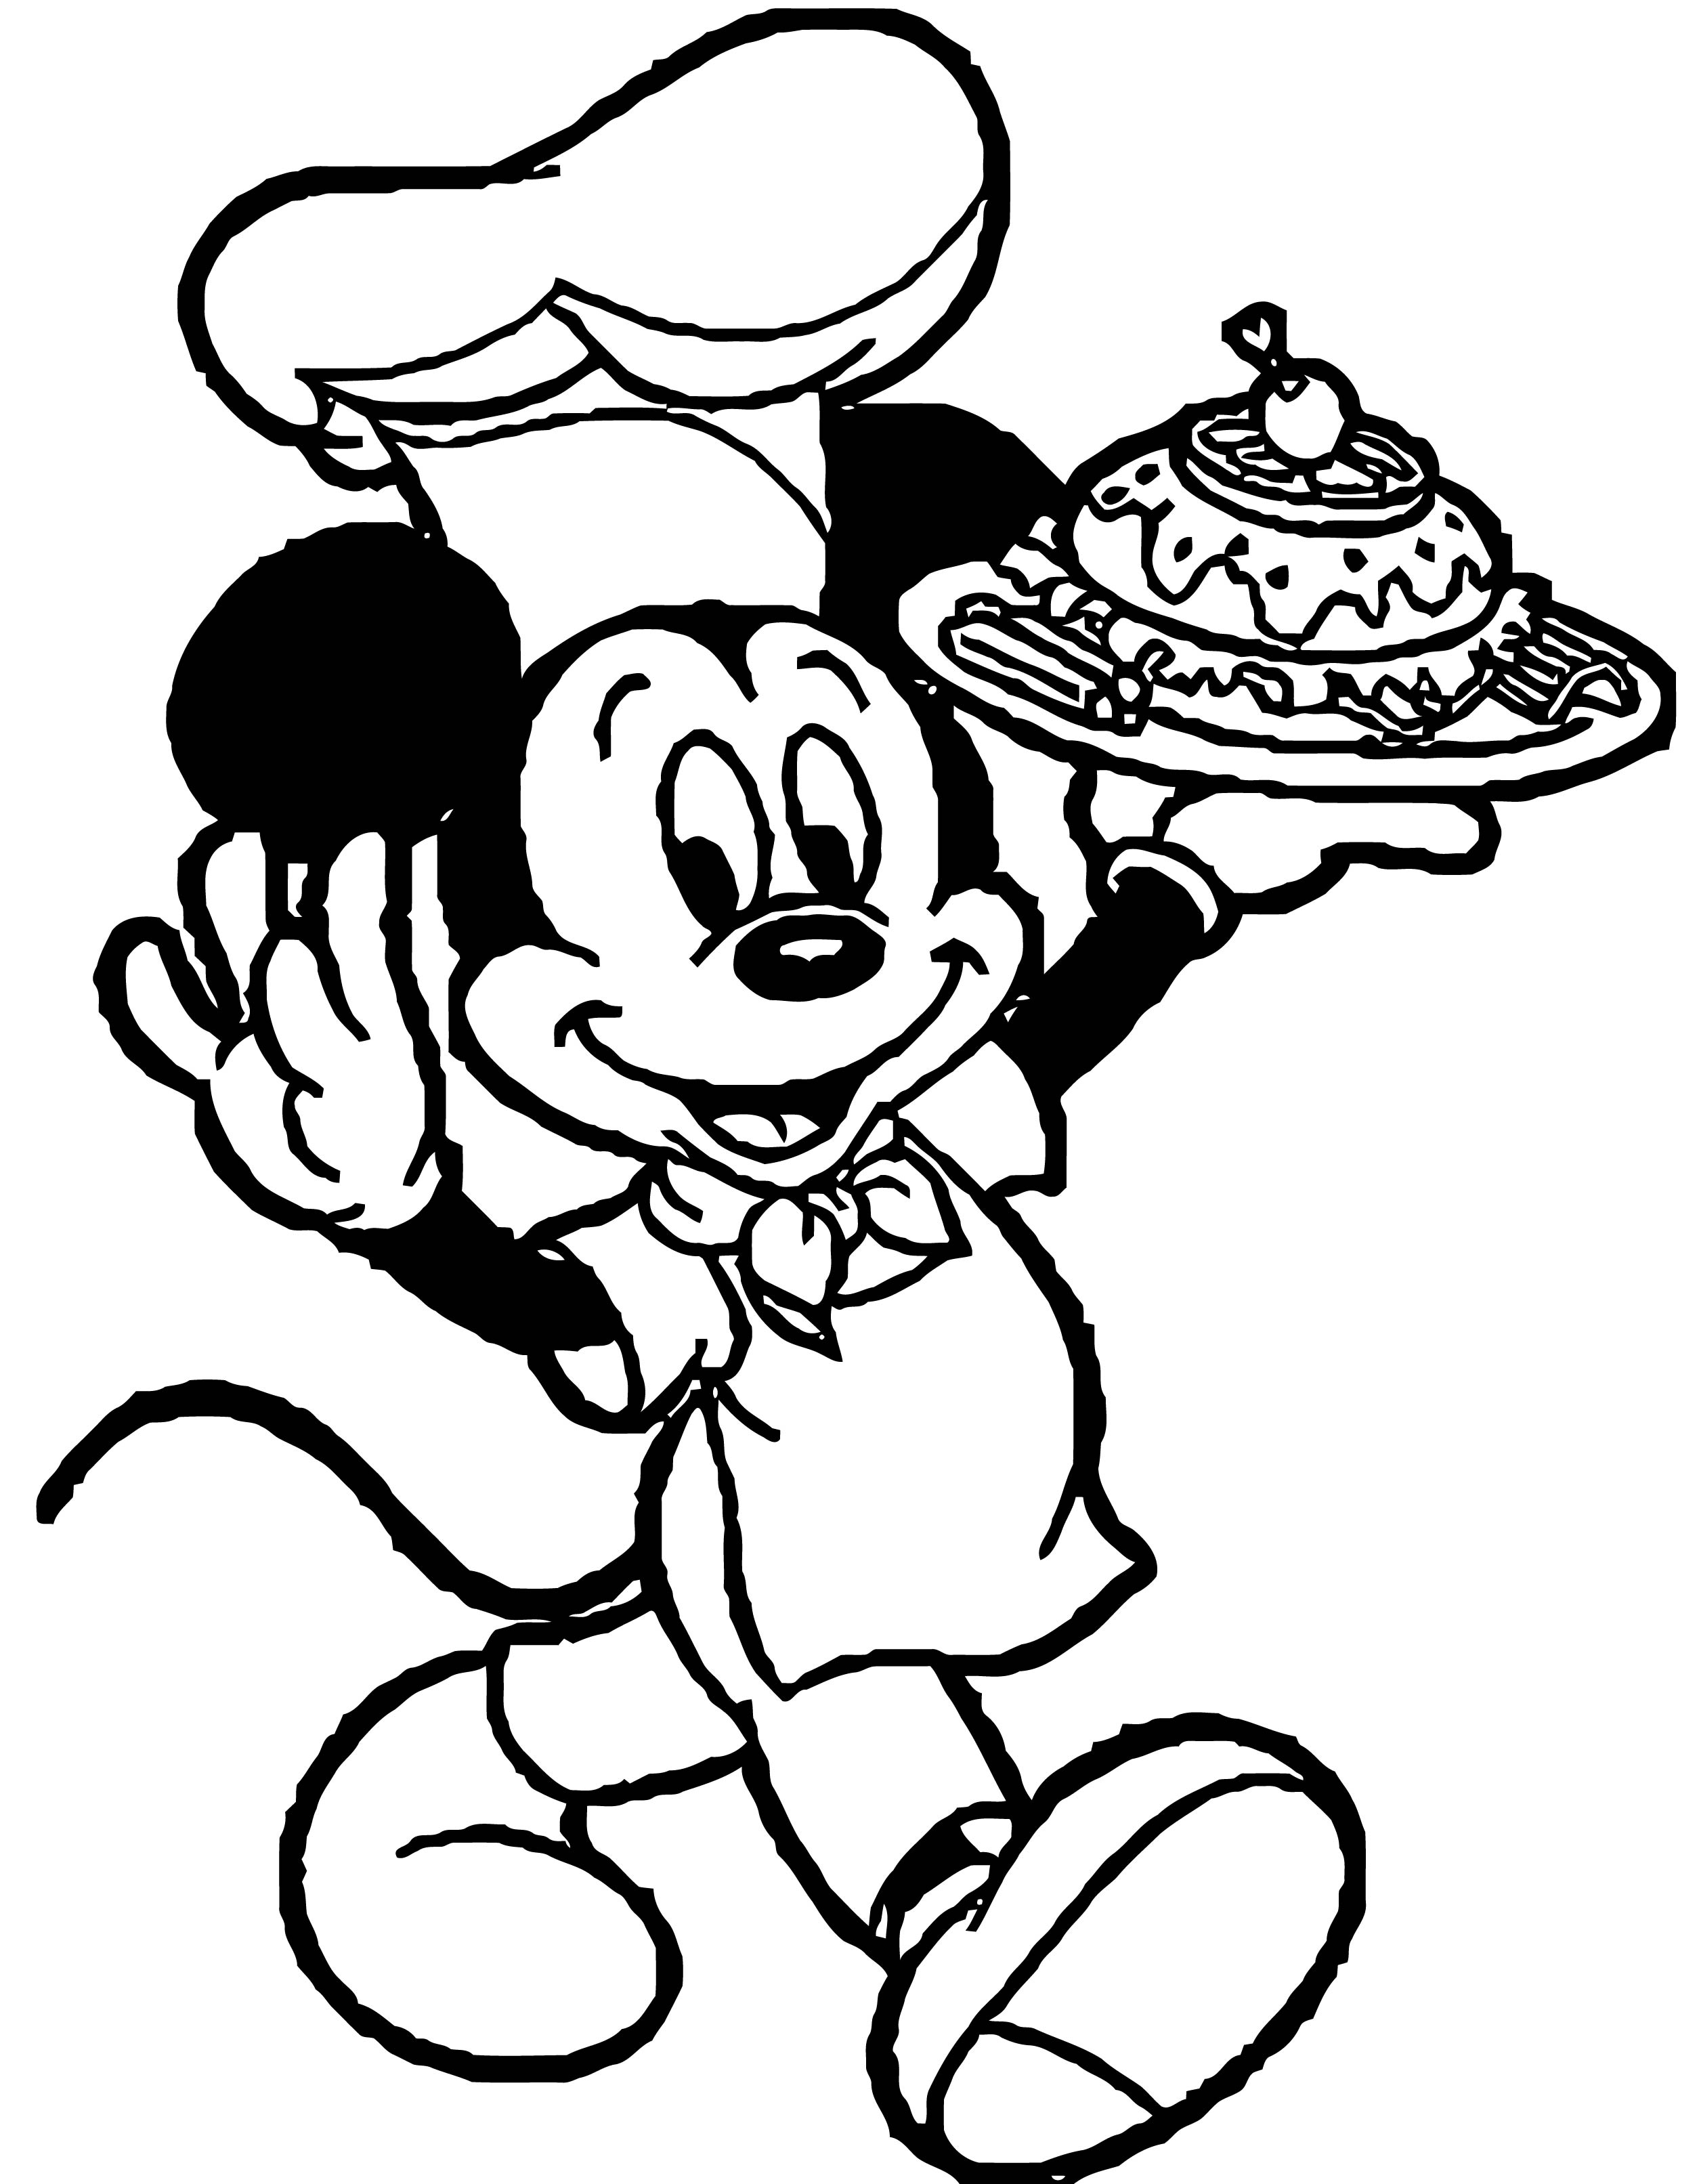 Mickburger Mickey Mouse Coloring Page